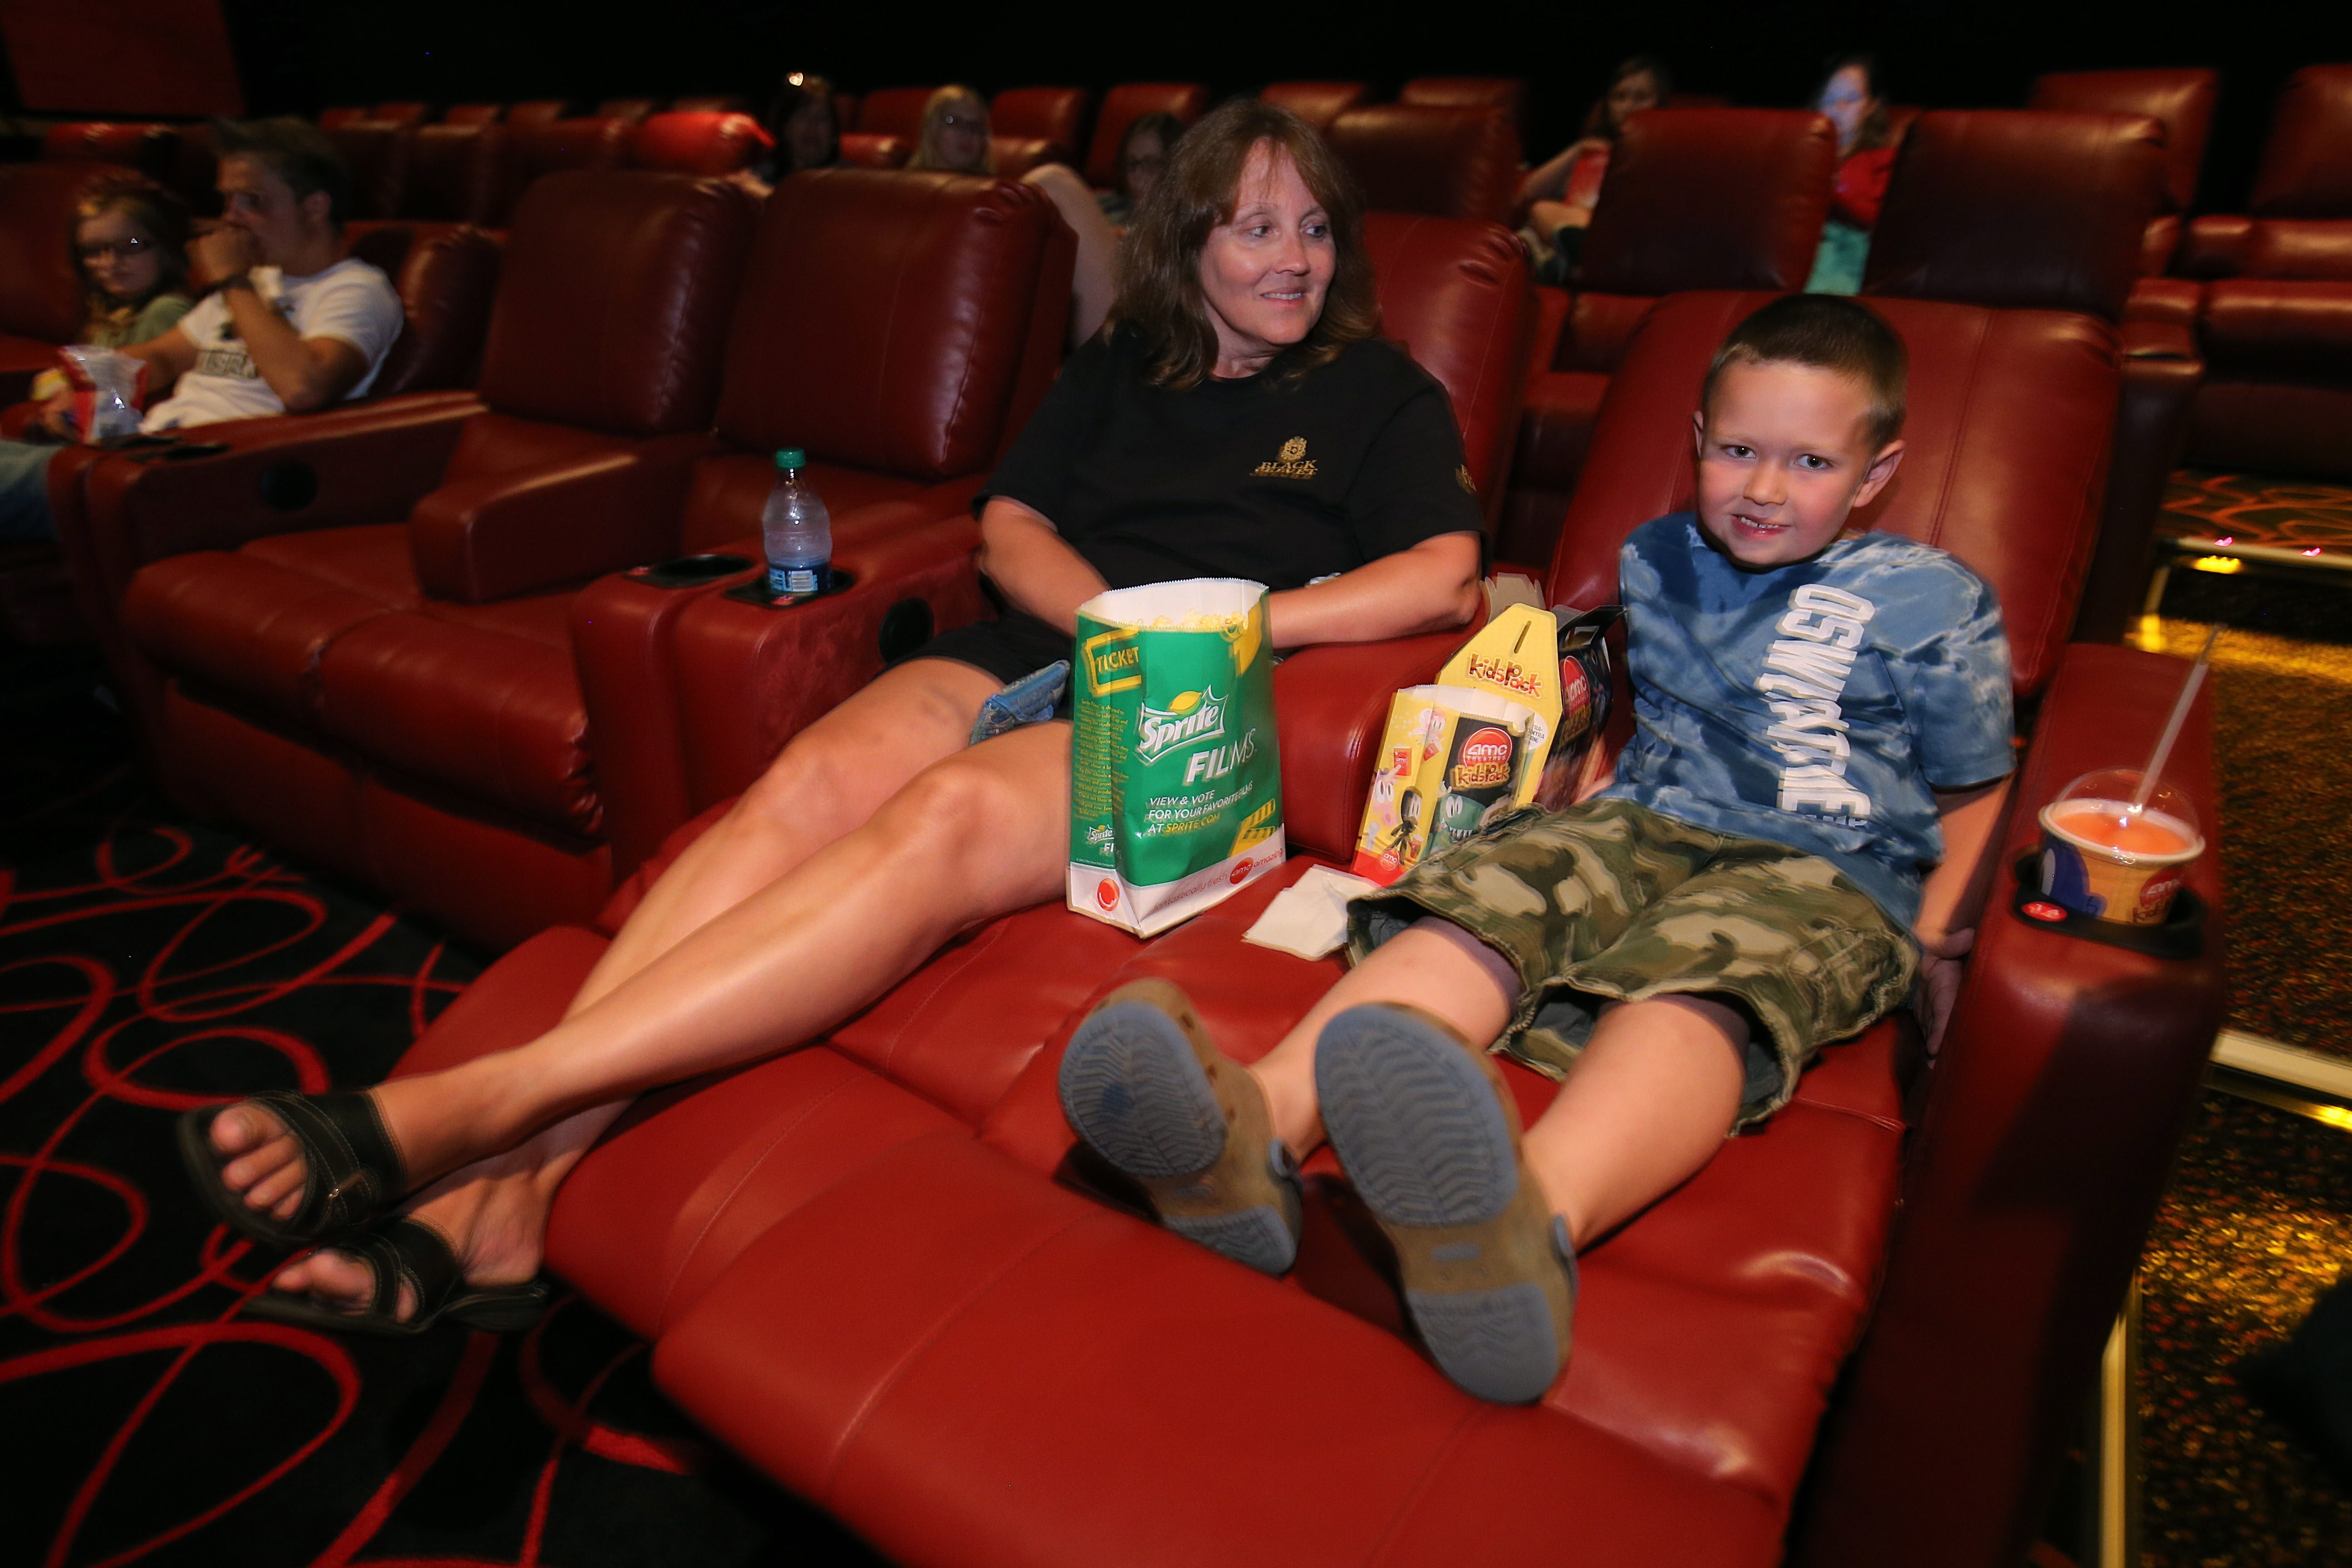 Phyllis O'Byrne, left, of Lockport, and her godson, Conor Crandall, 6, of Medina, enjoy the reclining leather seats at the AMC Maple Ridge movie theater.